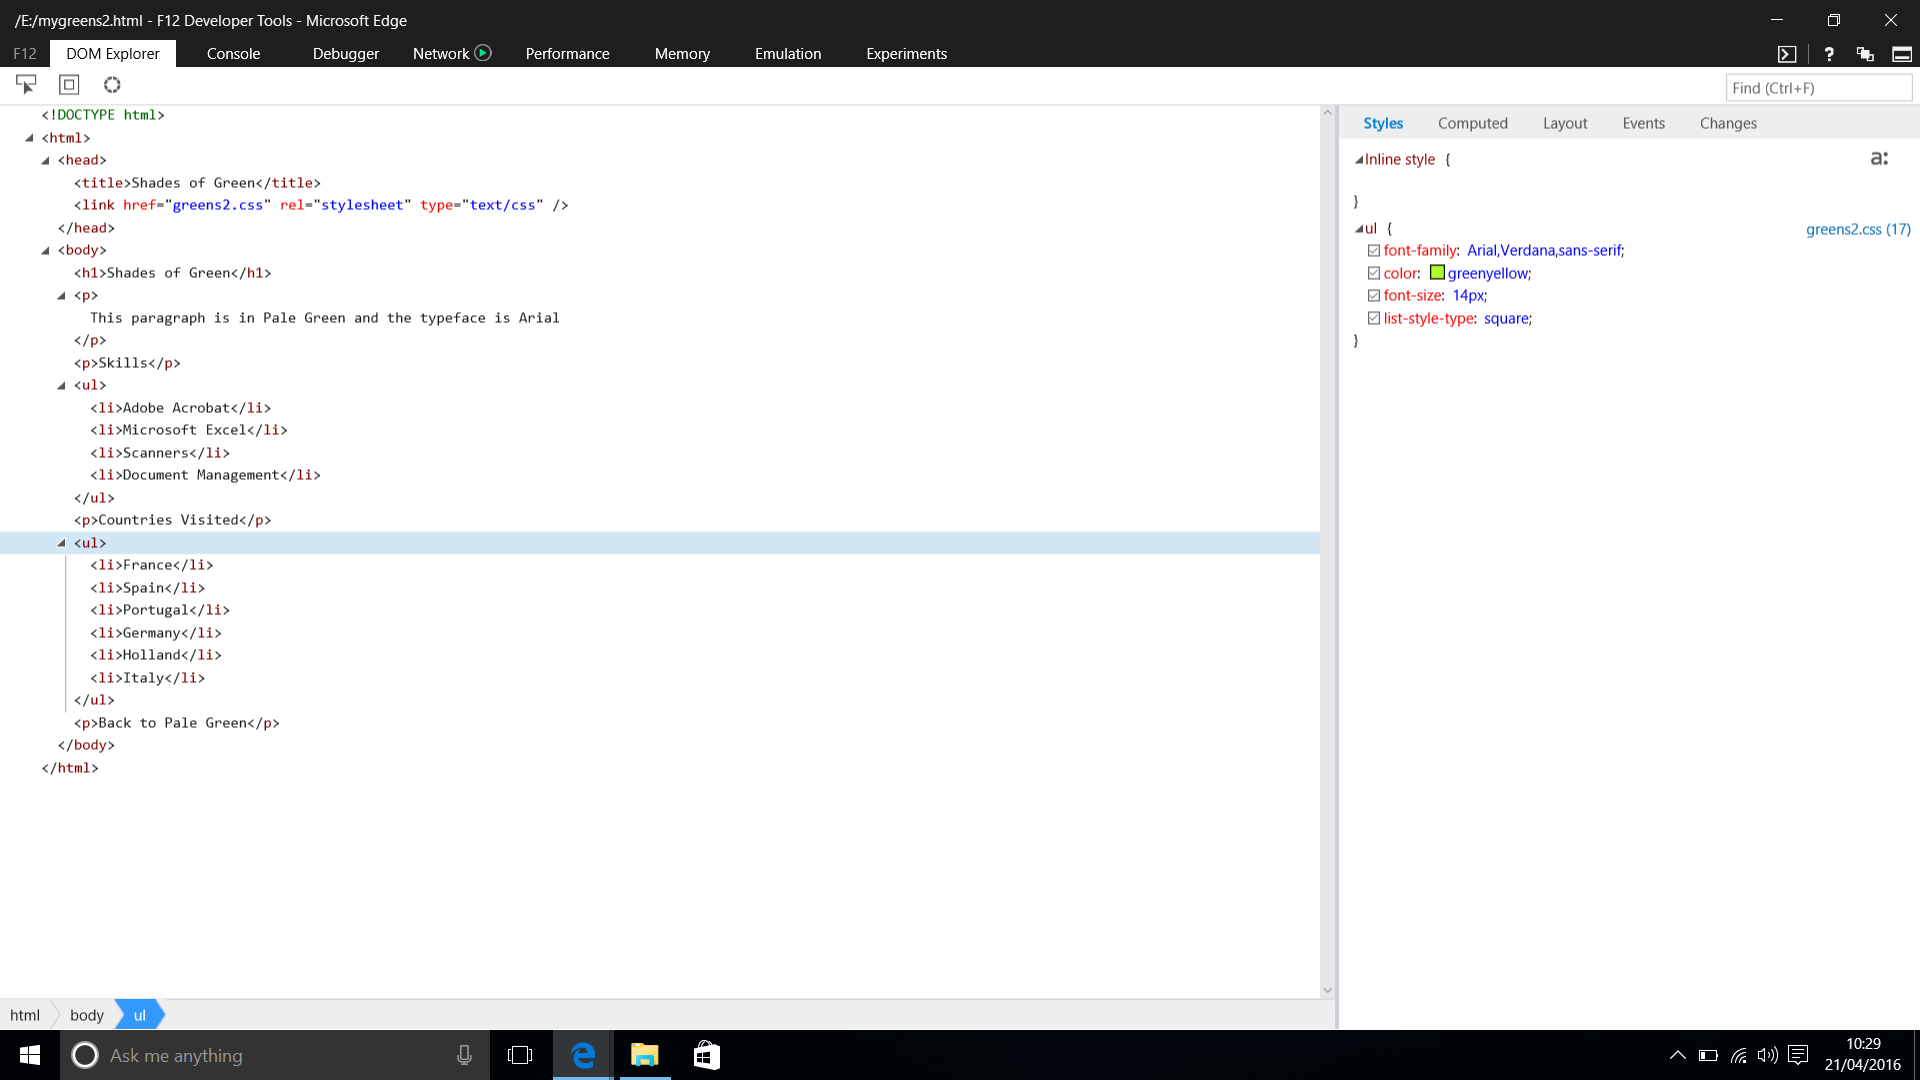 Screenshot of DOM Explorer showing Code and the UL Styles in Microsoft Edge - Windows 10.  Taken on 21 April 2016.